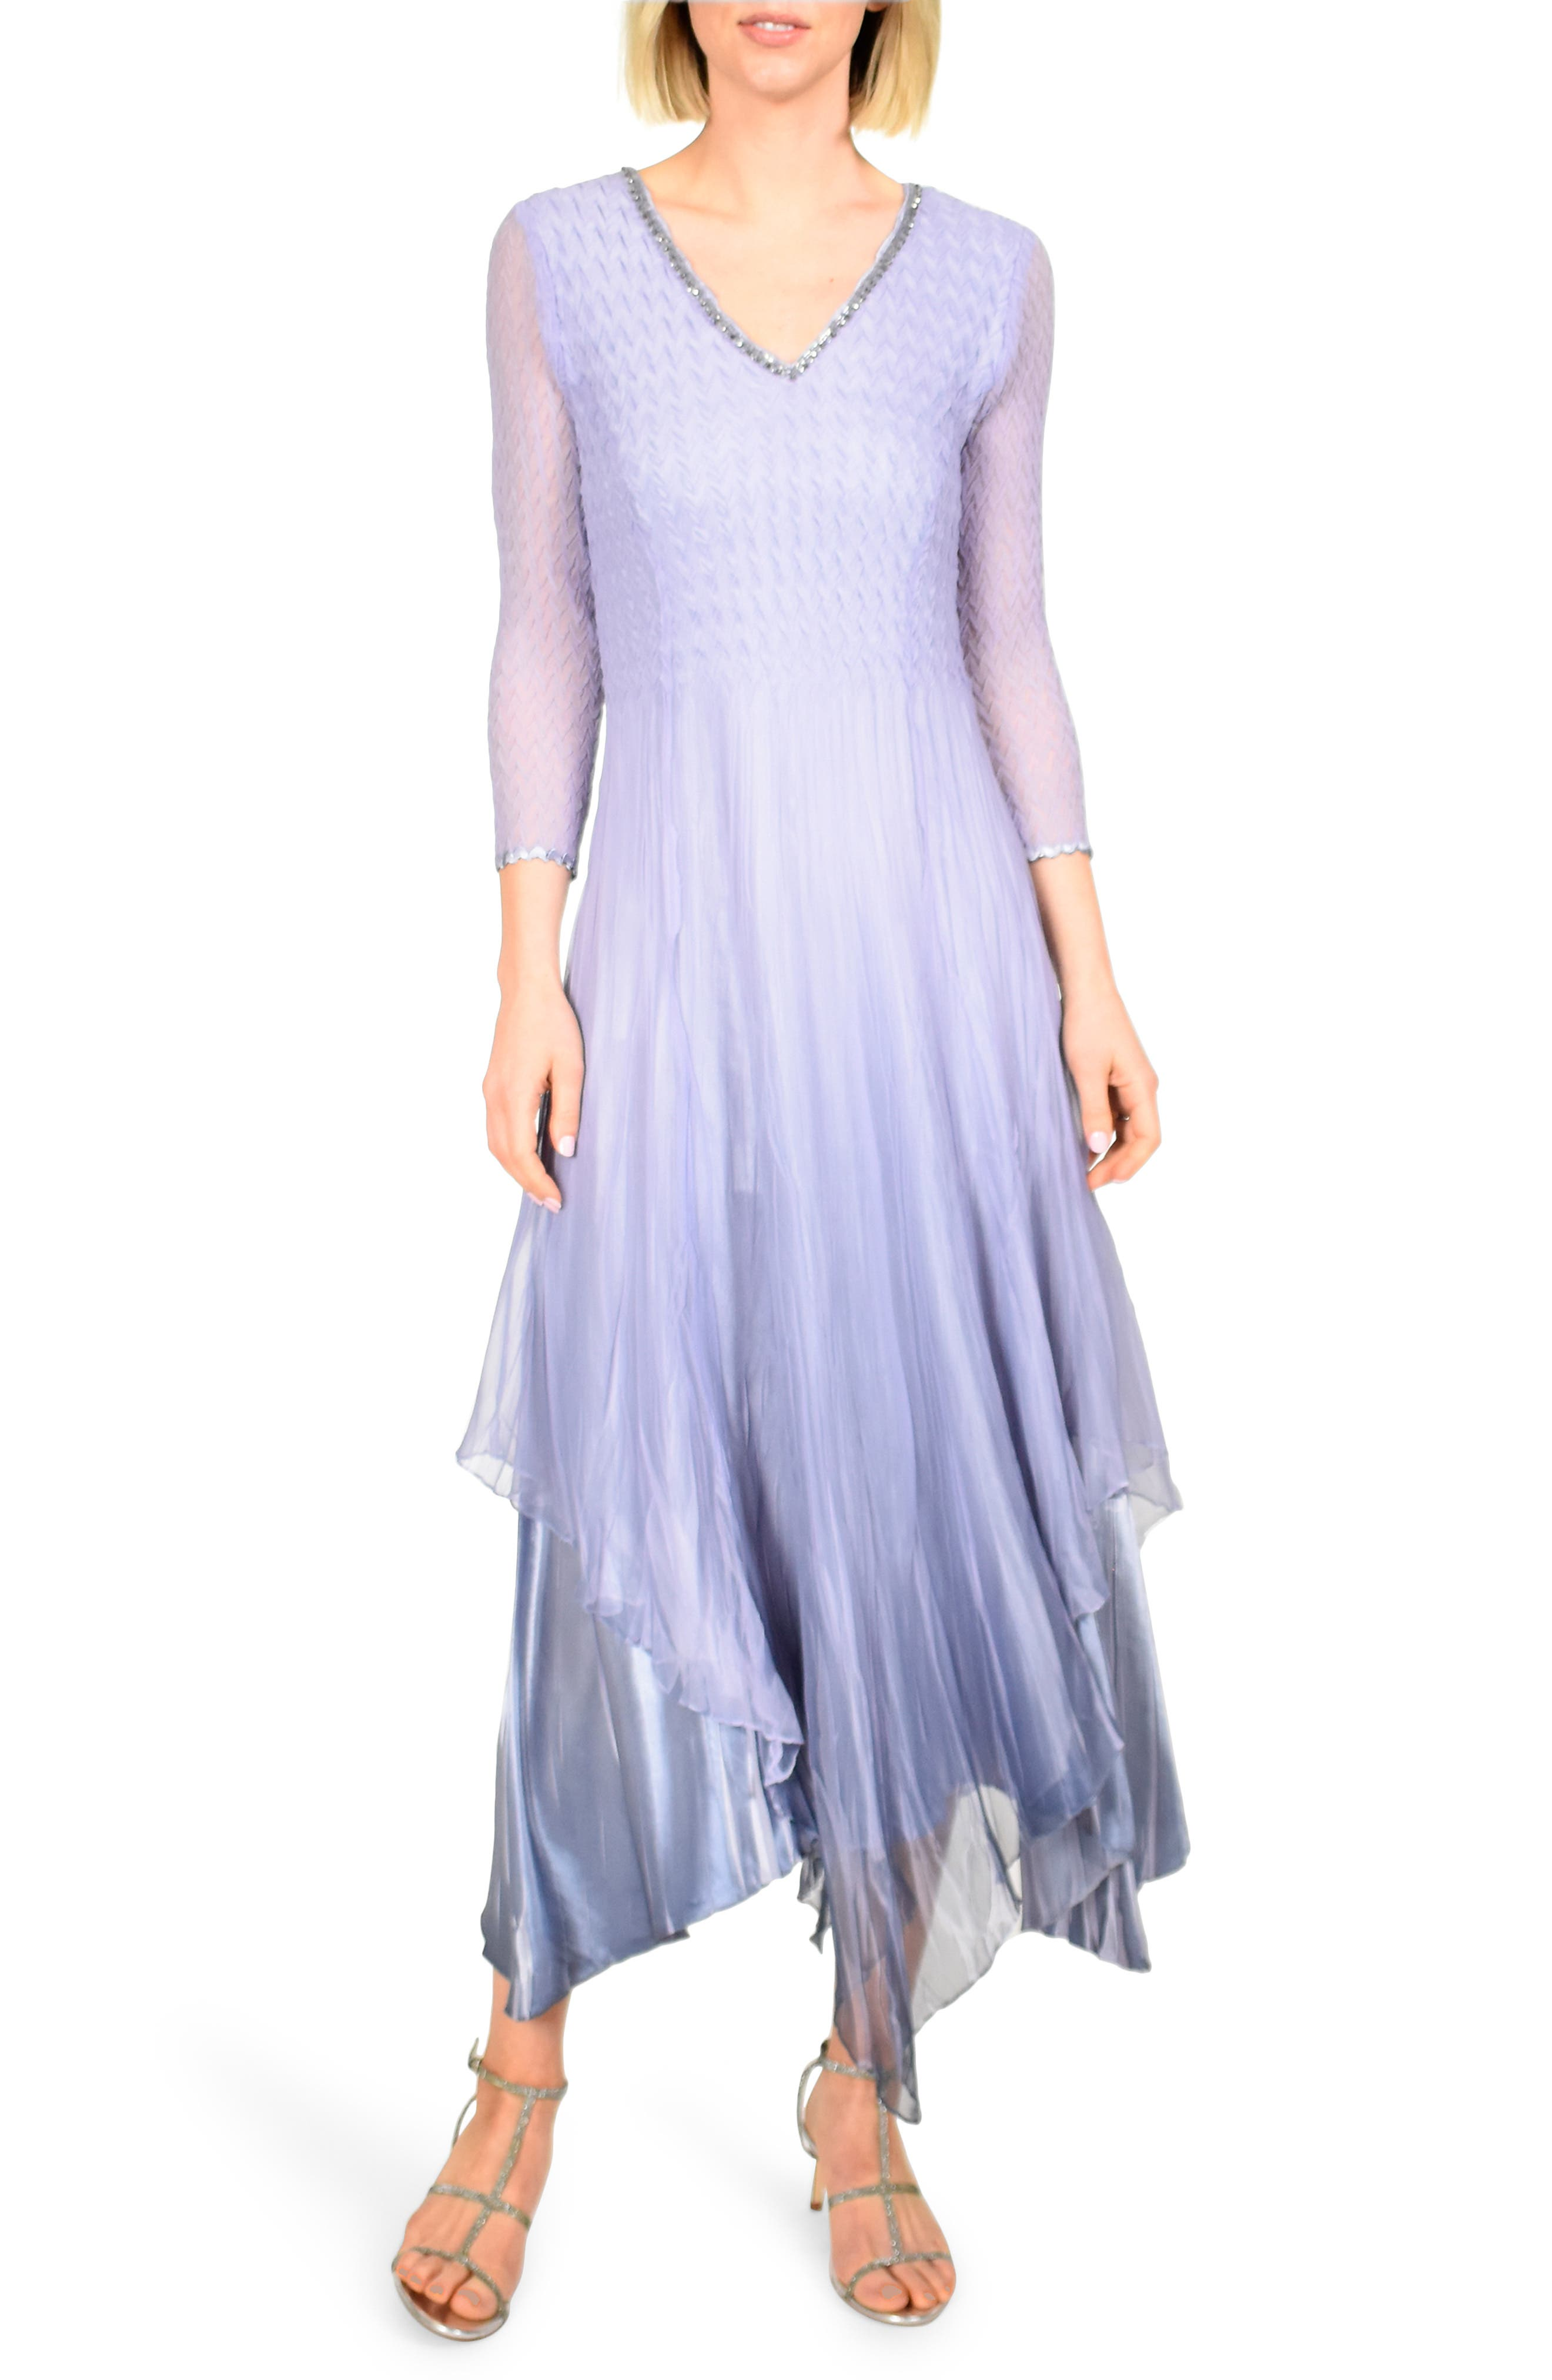 Indian Summers Inspired Clothing Plus Size Womens Komarov Beaded V-Neck Chiffon Overlay Charmeuse Gown $238.80 AT vintagedancer.com